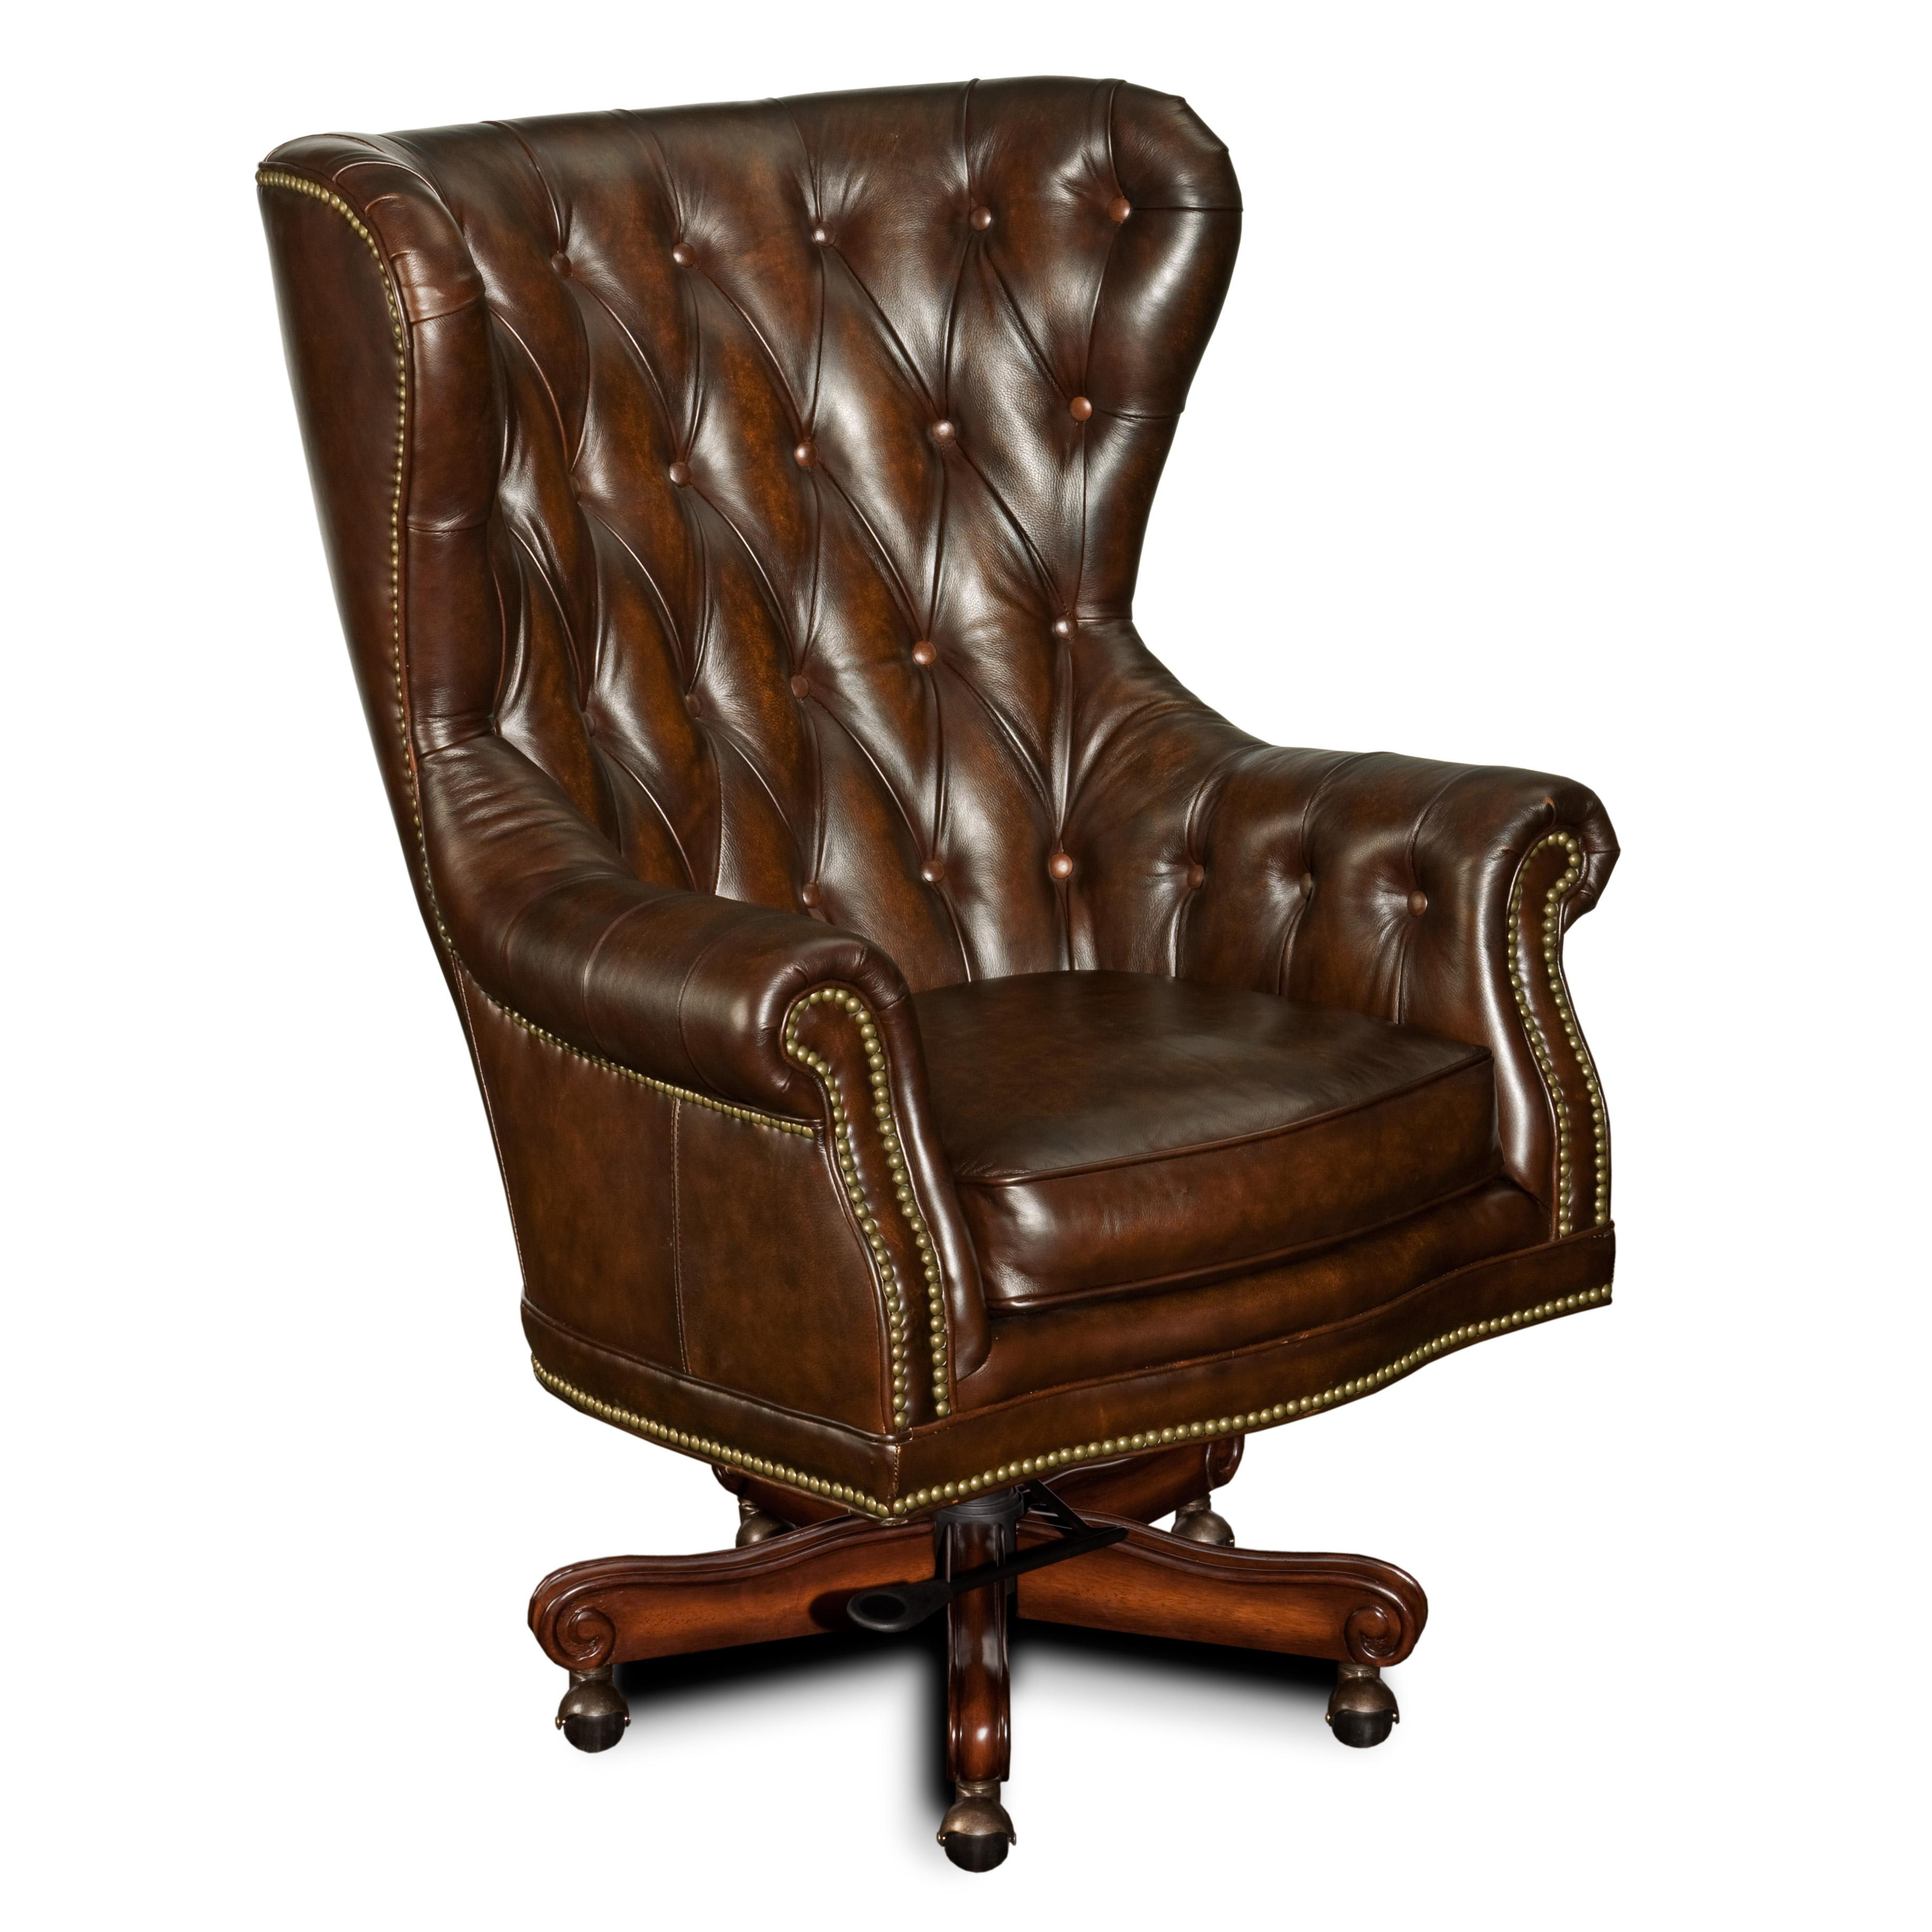 Hooker Furniture Executive Seating Executive Swivel Tilt Chair Howell Furniture Executive Desk Chairs